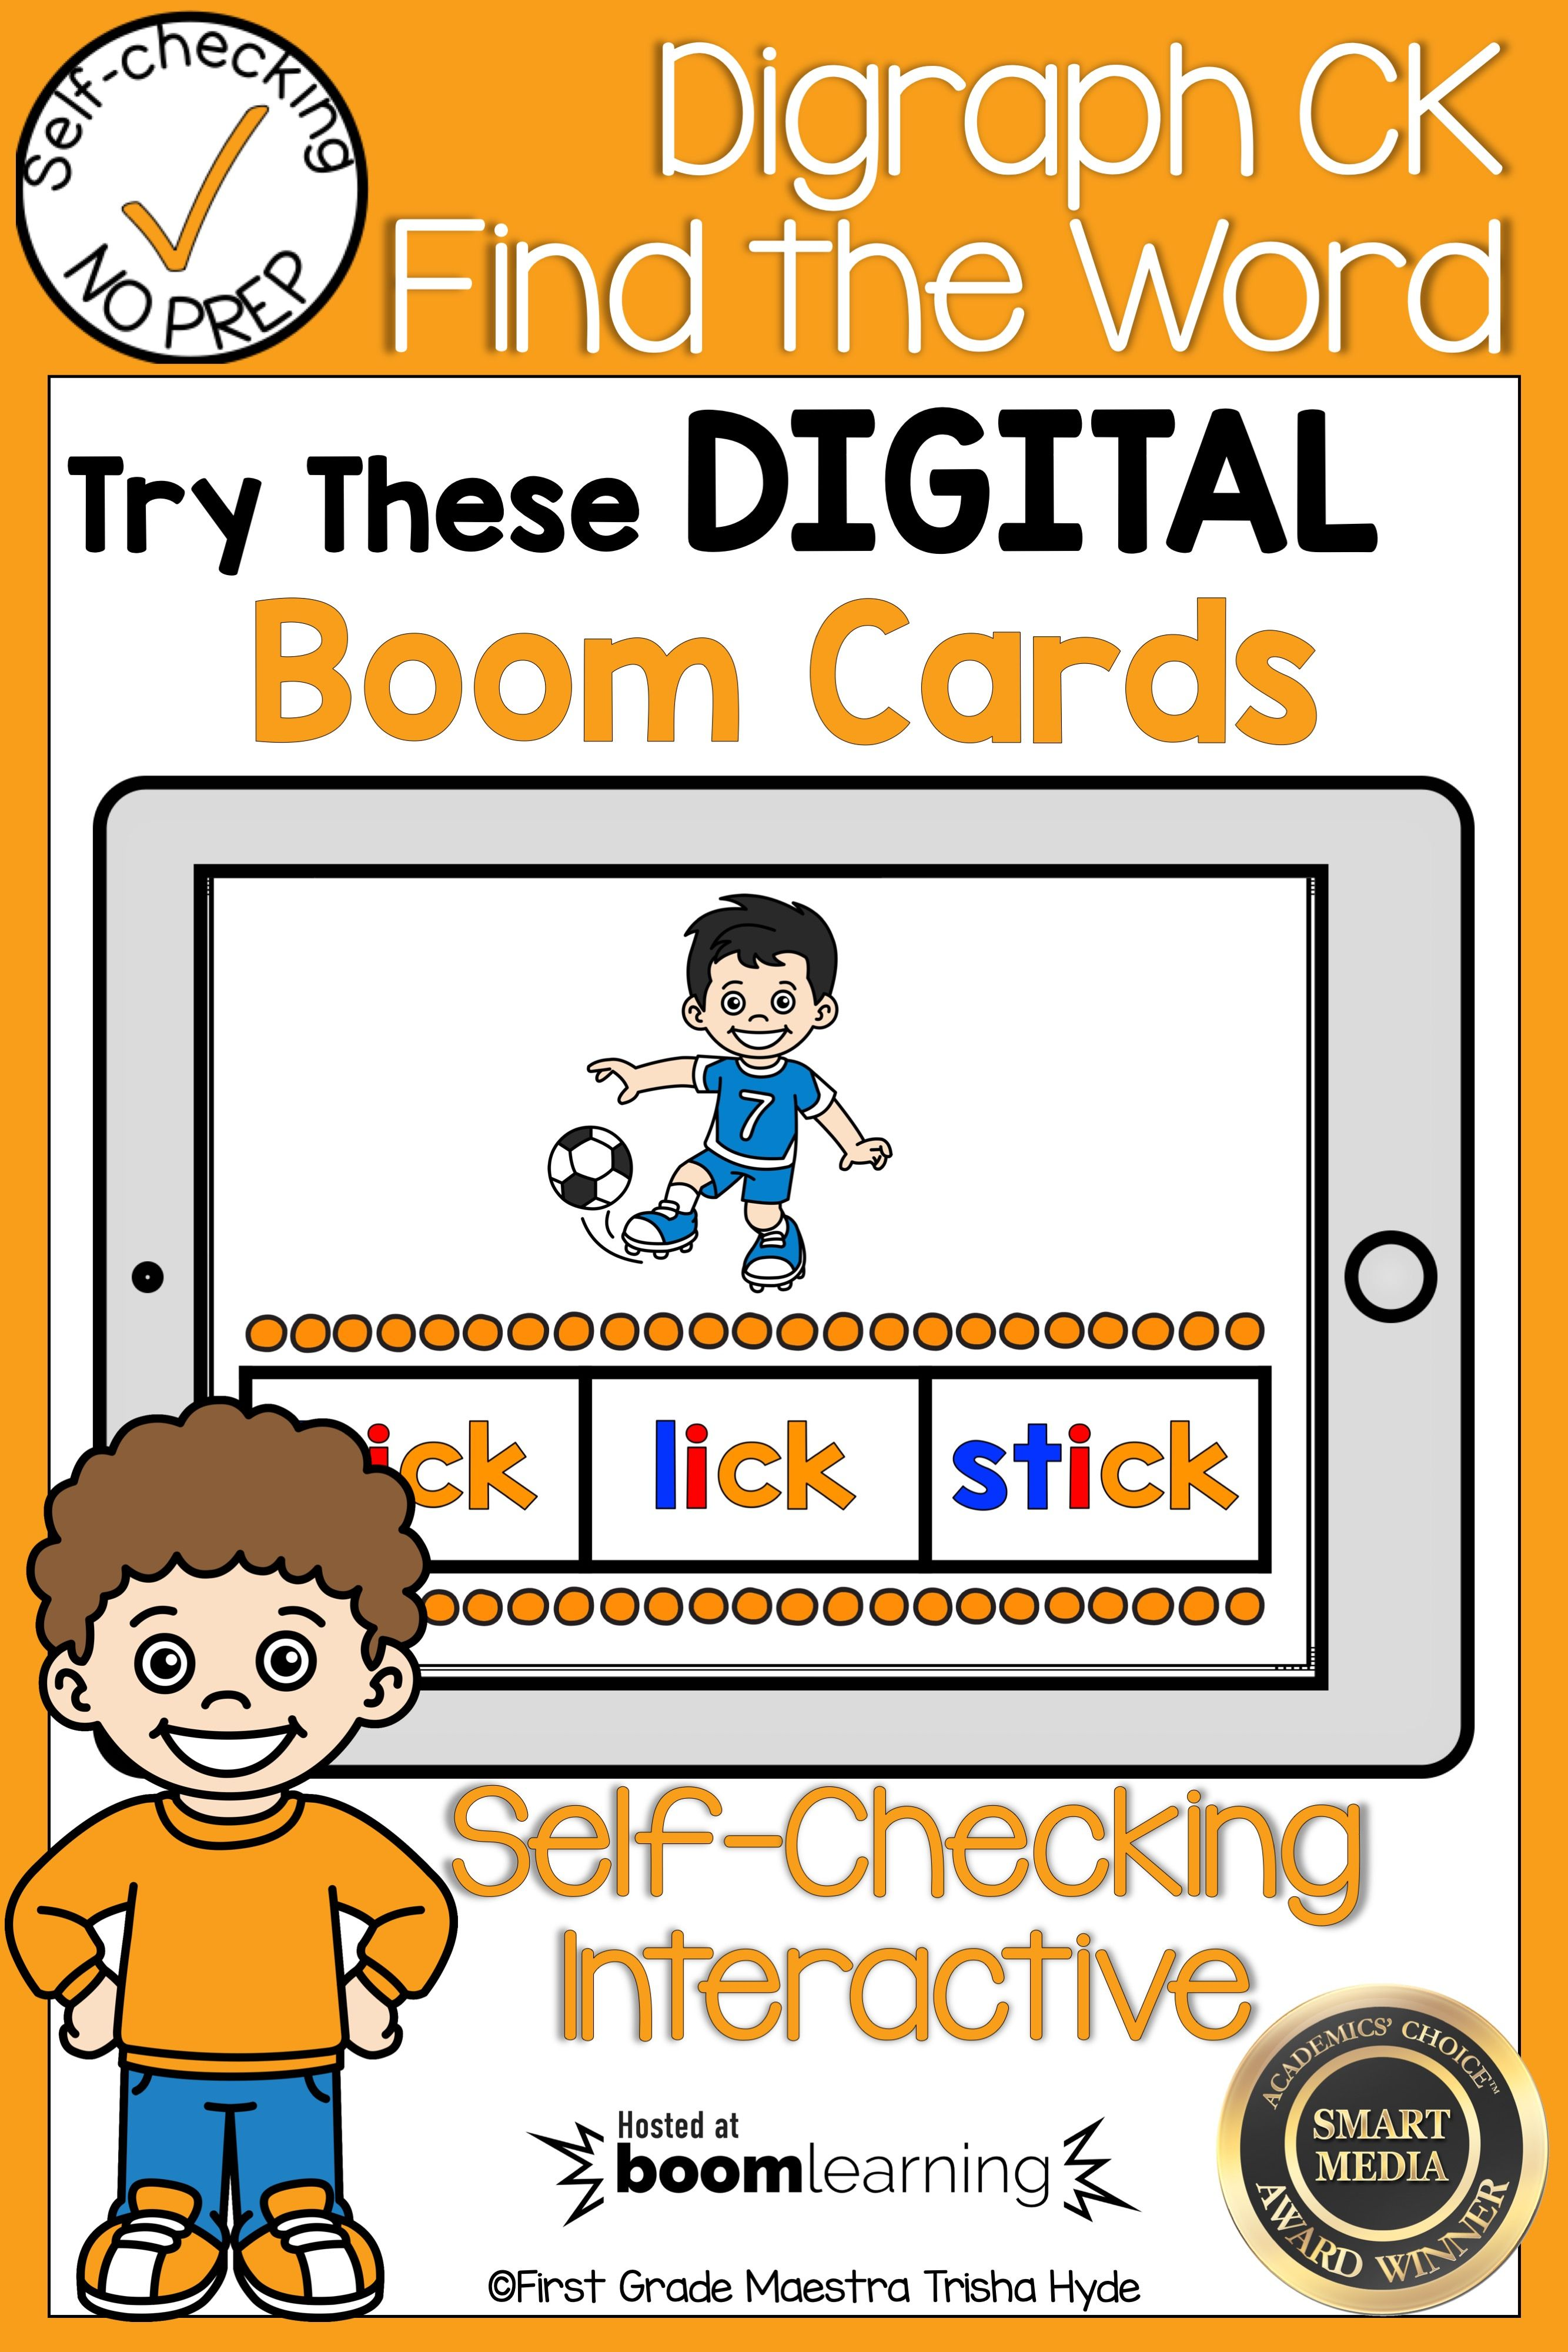 Boom Cards Digraph Ck Find The Word